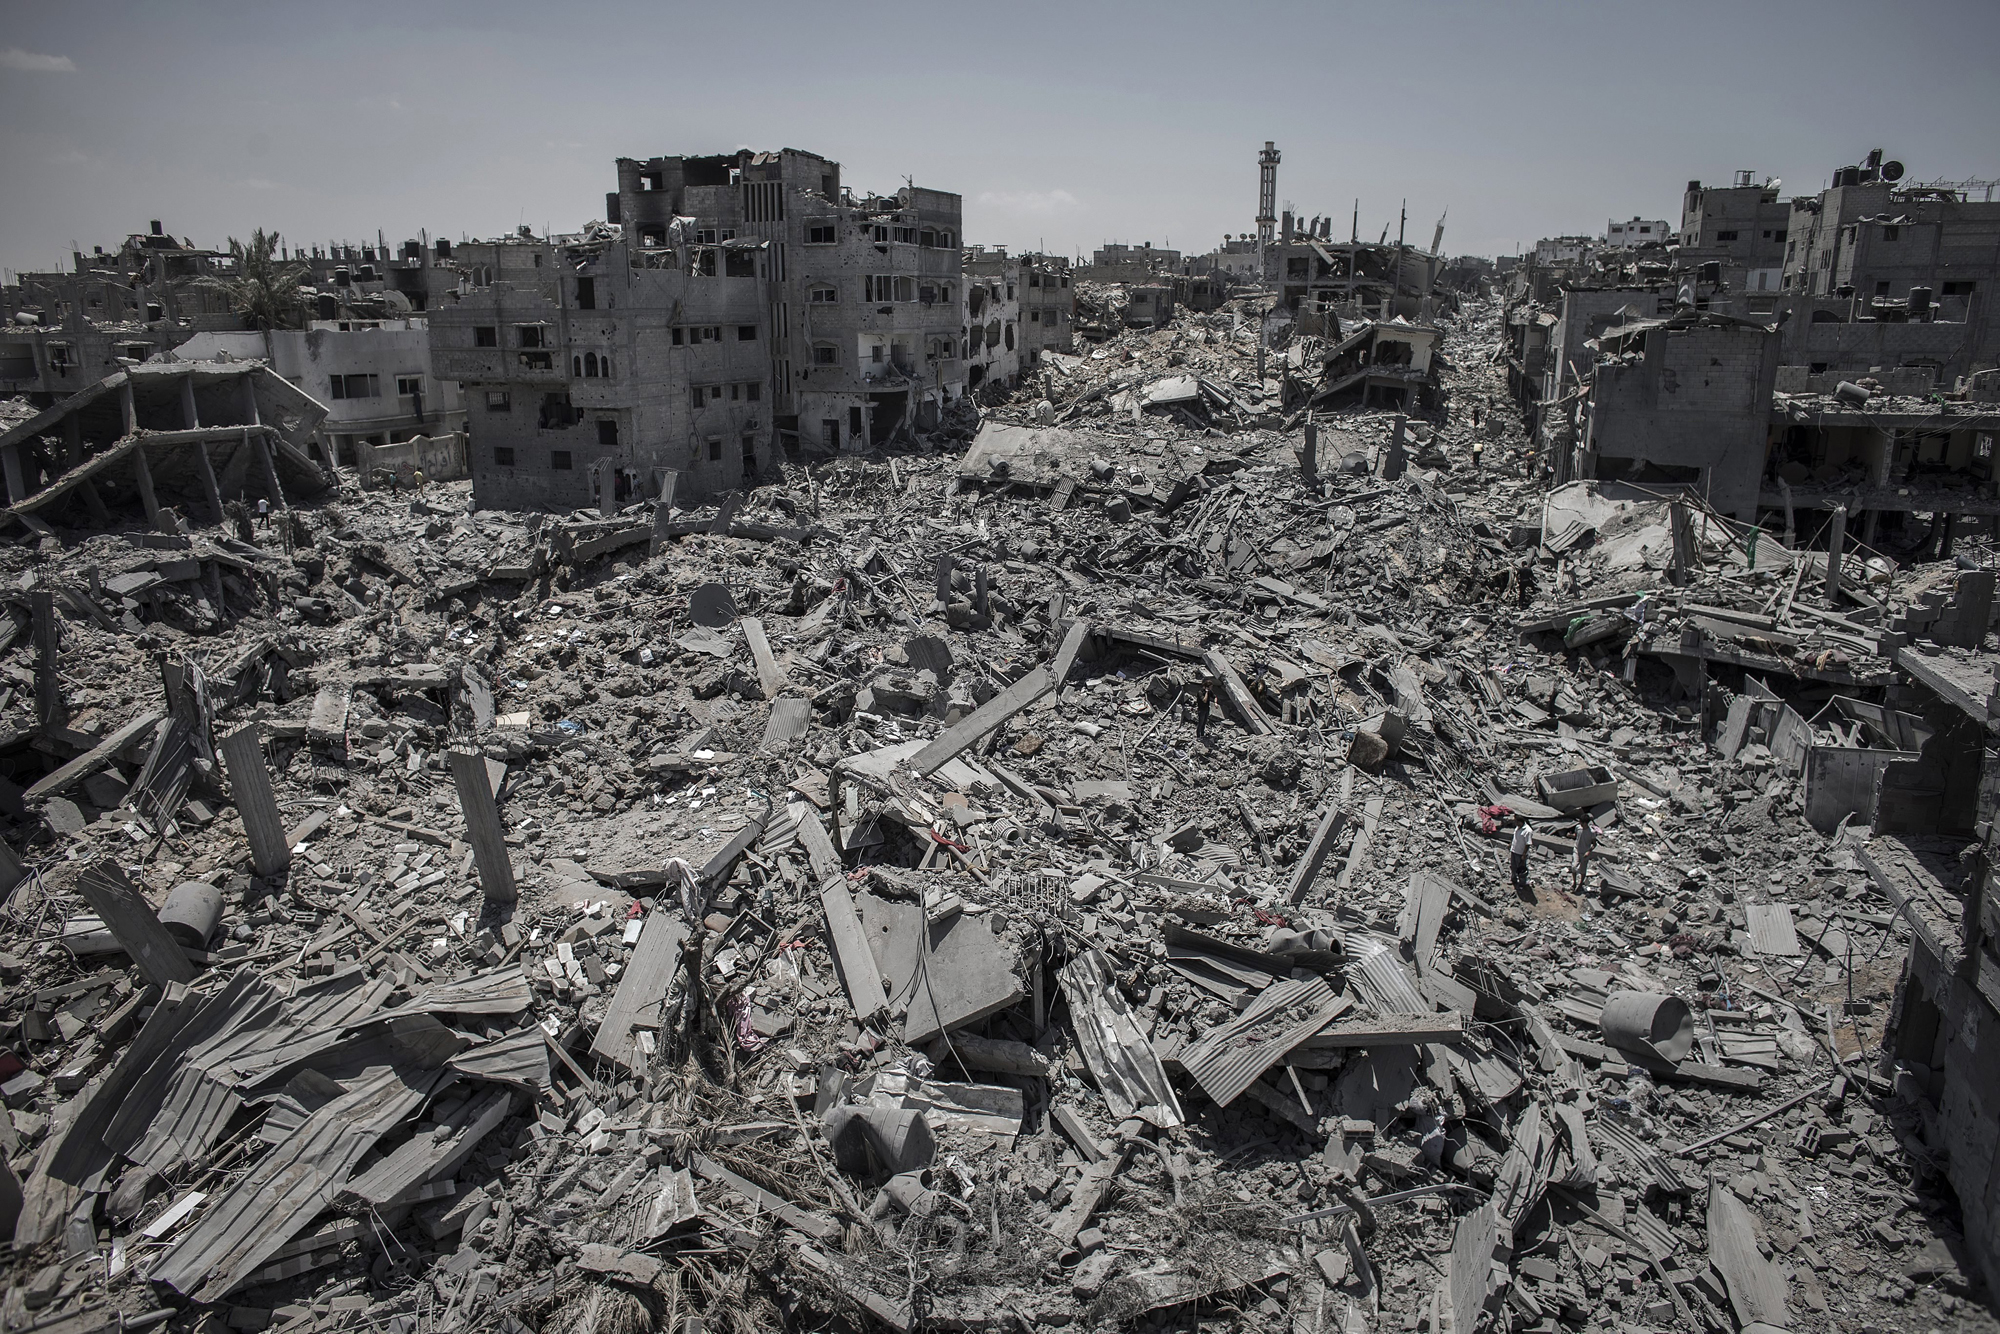 A general view of destroyed buildings after Israeli attacks in a part of the Shuja'iyya neighborhood in east Gaza City, July 26, 2014.